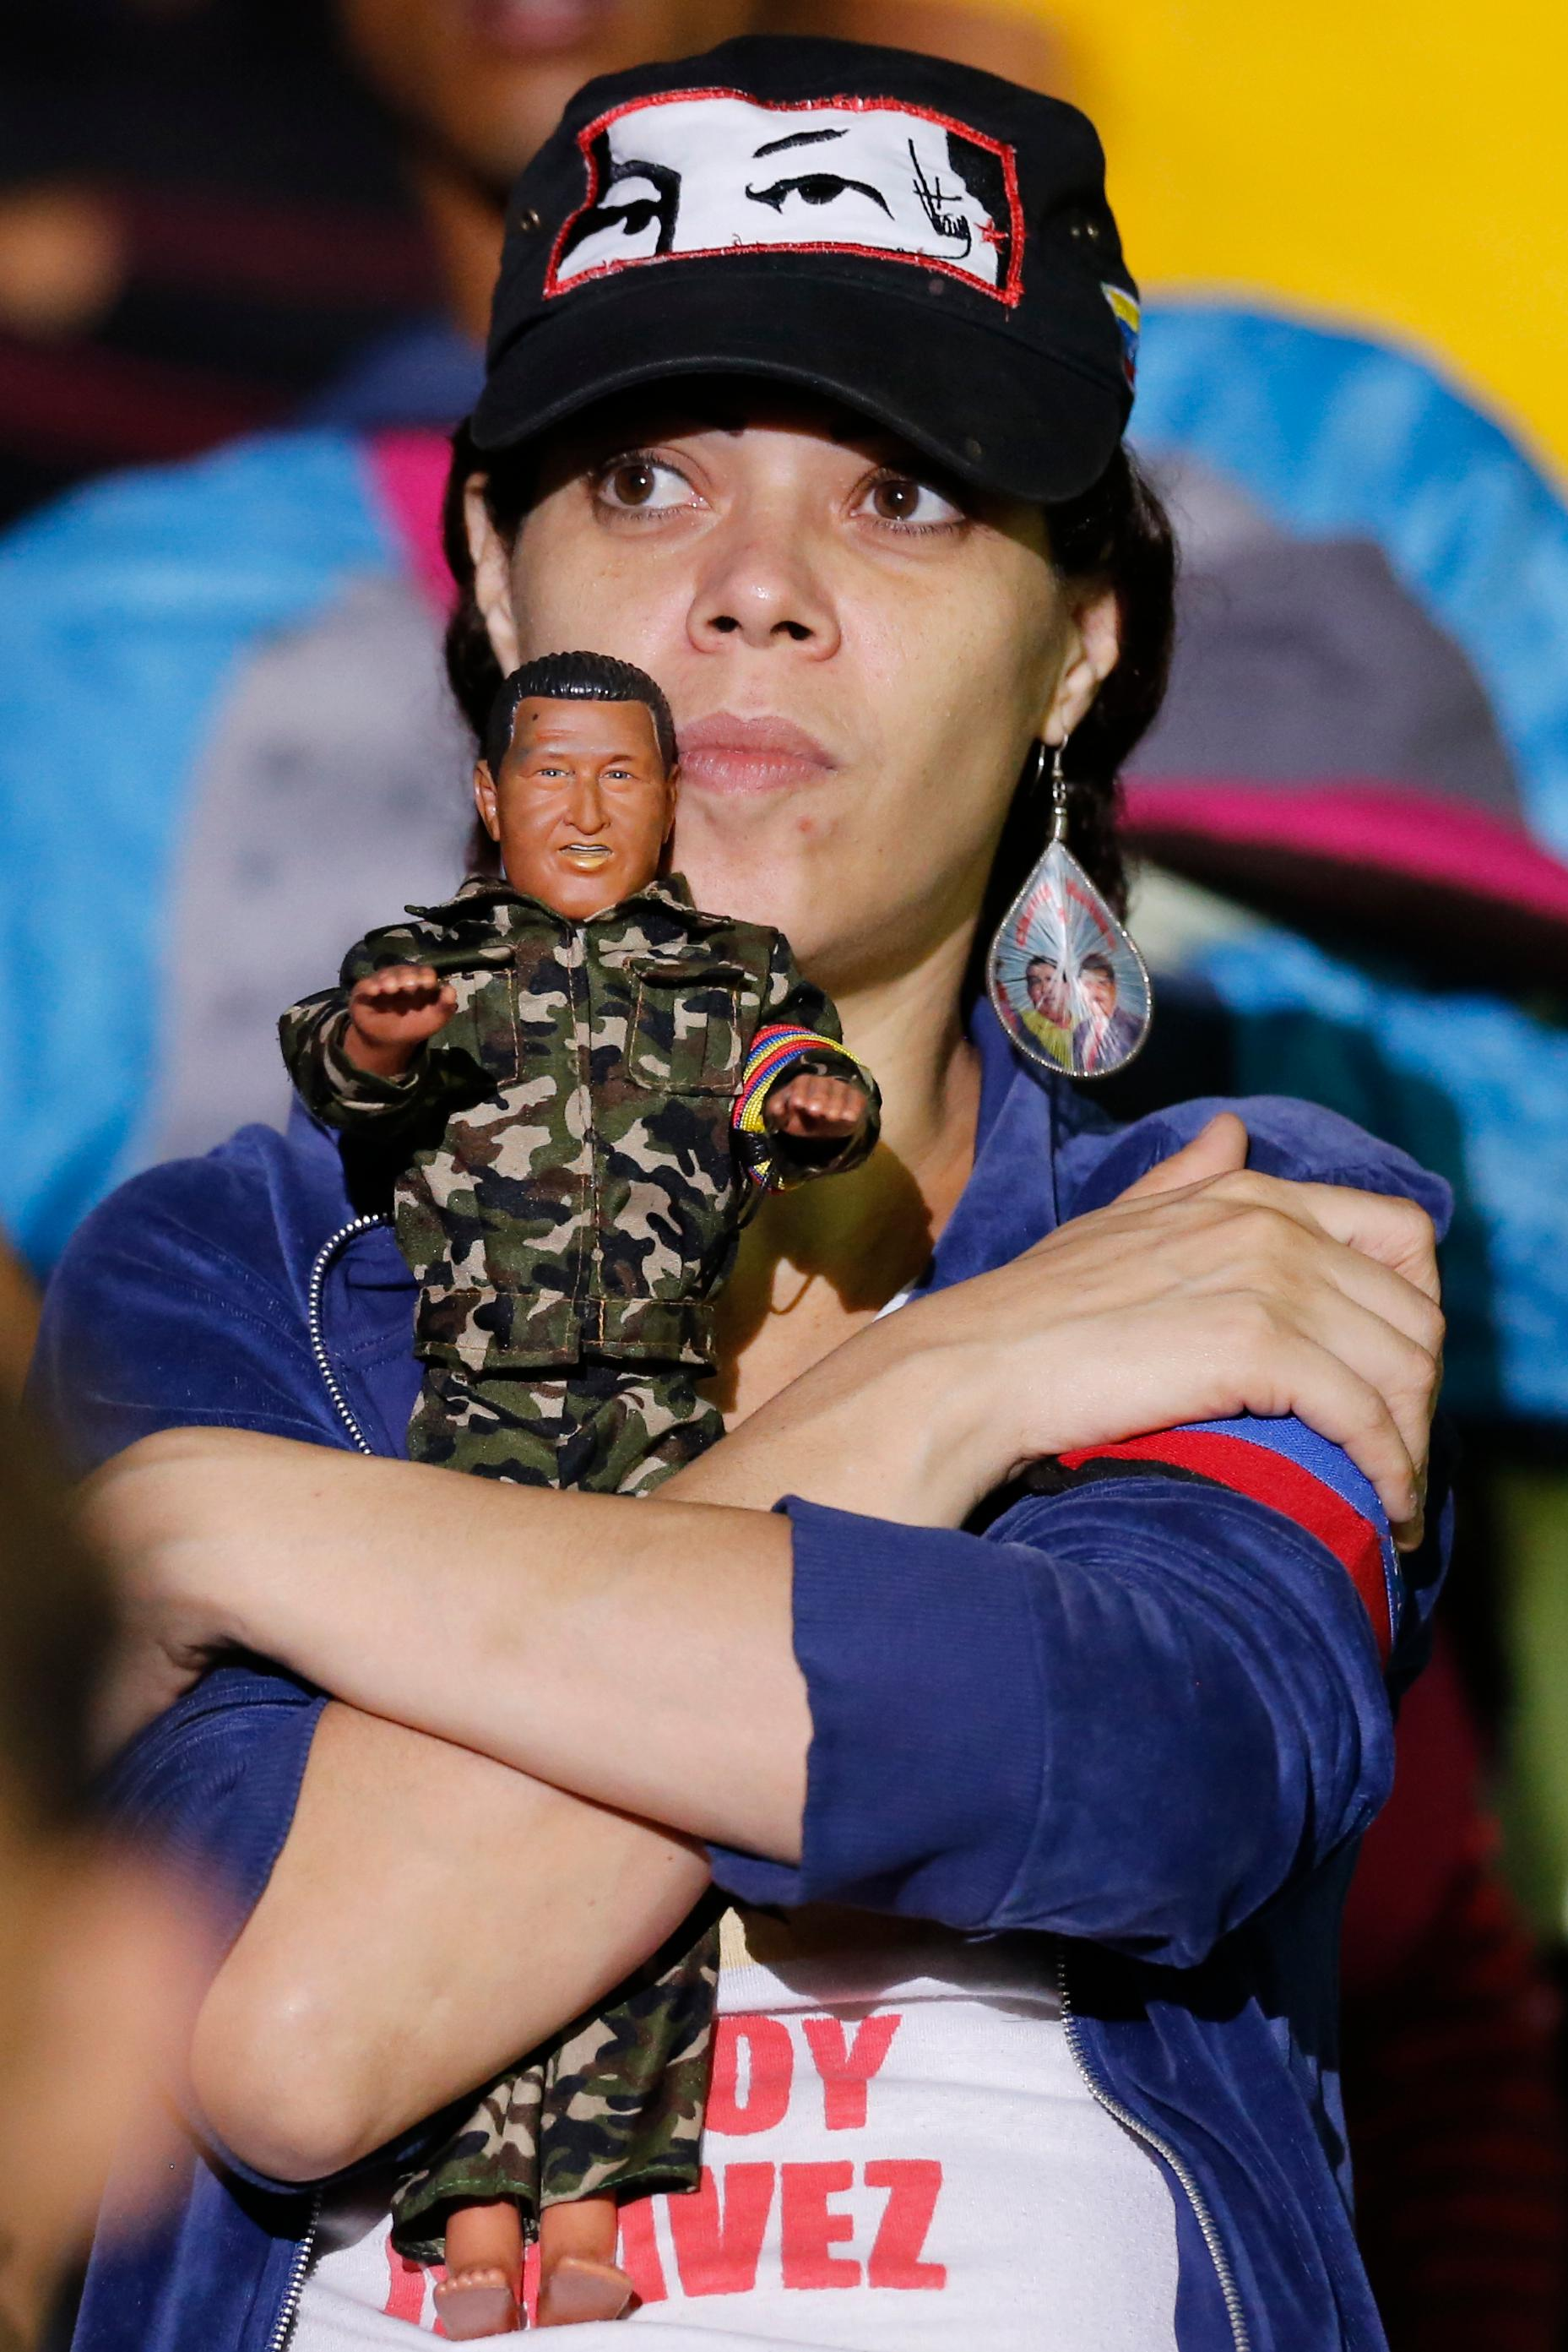 A supporter listens to Venezuela's President Nicolas Maduro, holding a doll of late President Hugo Chavez, at the presidential palace in Caracas, Venezuela, Sunday, May 20, 2018. Election officials say the socialist leader won a second six-year term, while his main rivals are disputing the legitimacy of the vote and calling for a new election. (AP Photo/Ariana Cubillos)